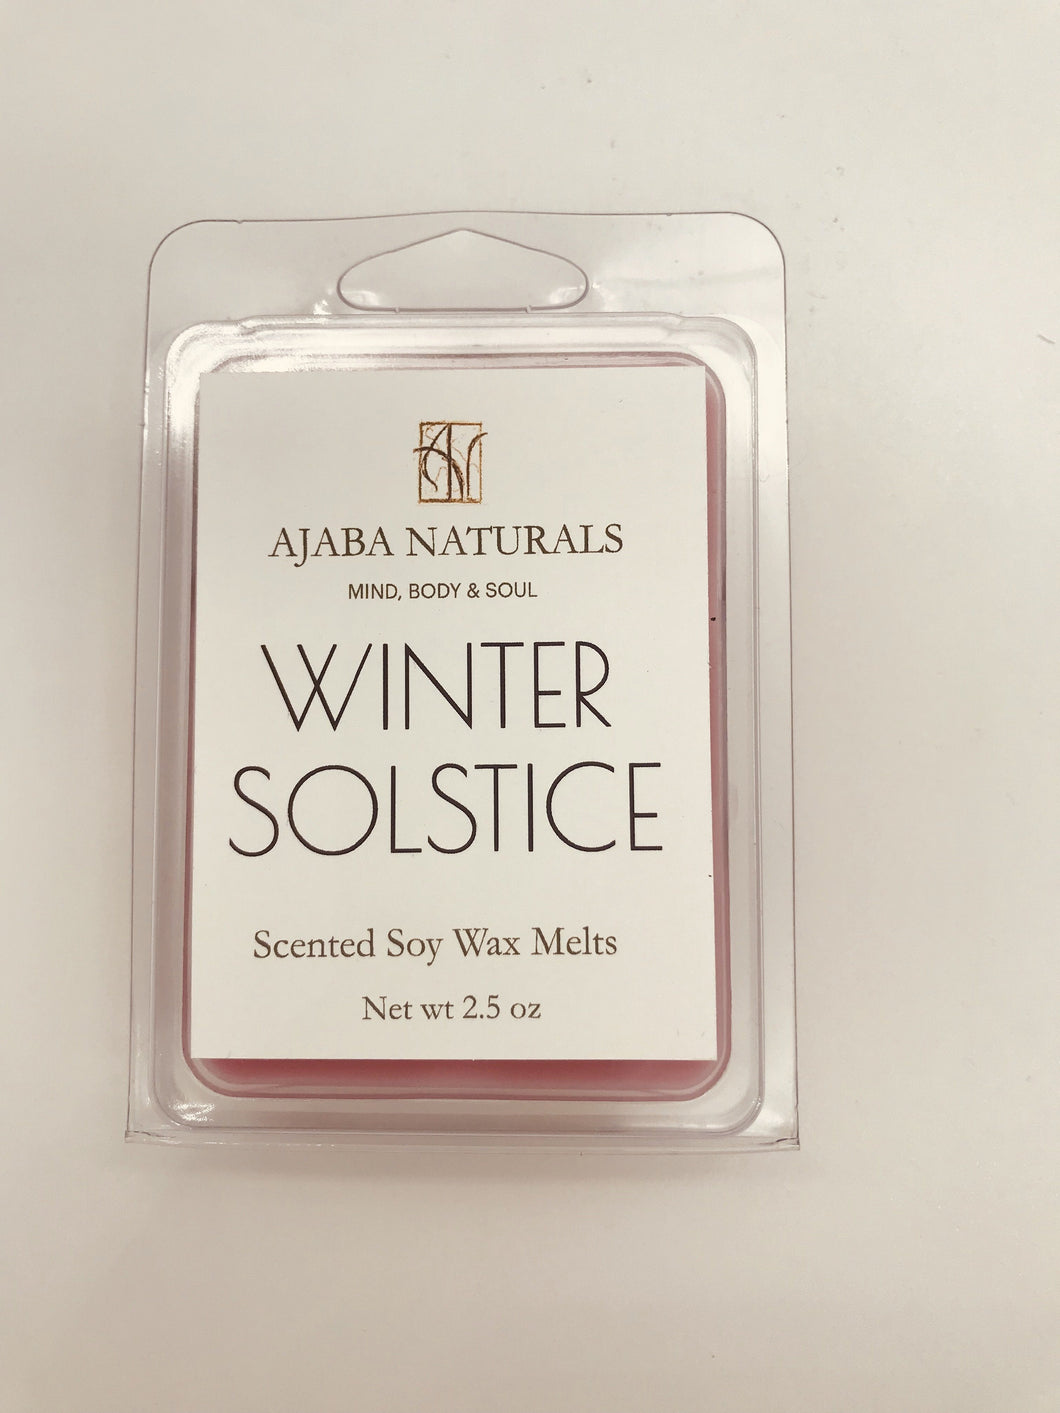 Winter Solstice Handcrafted Soy Wax Melts Soy Wax Melts AJABA NATURALS™